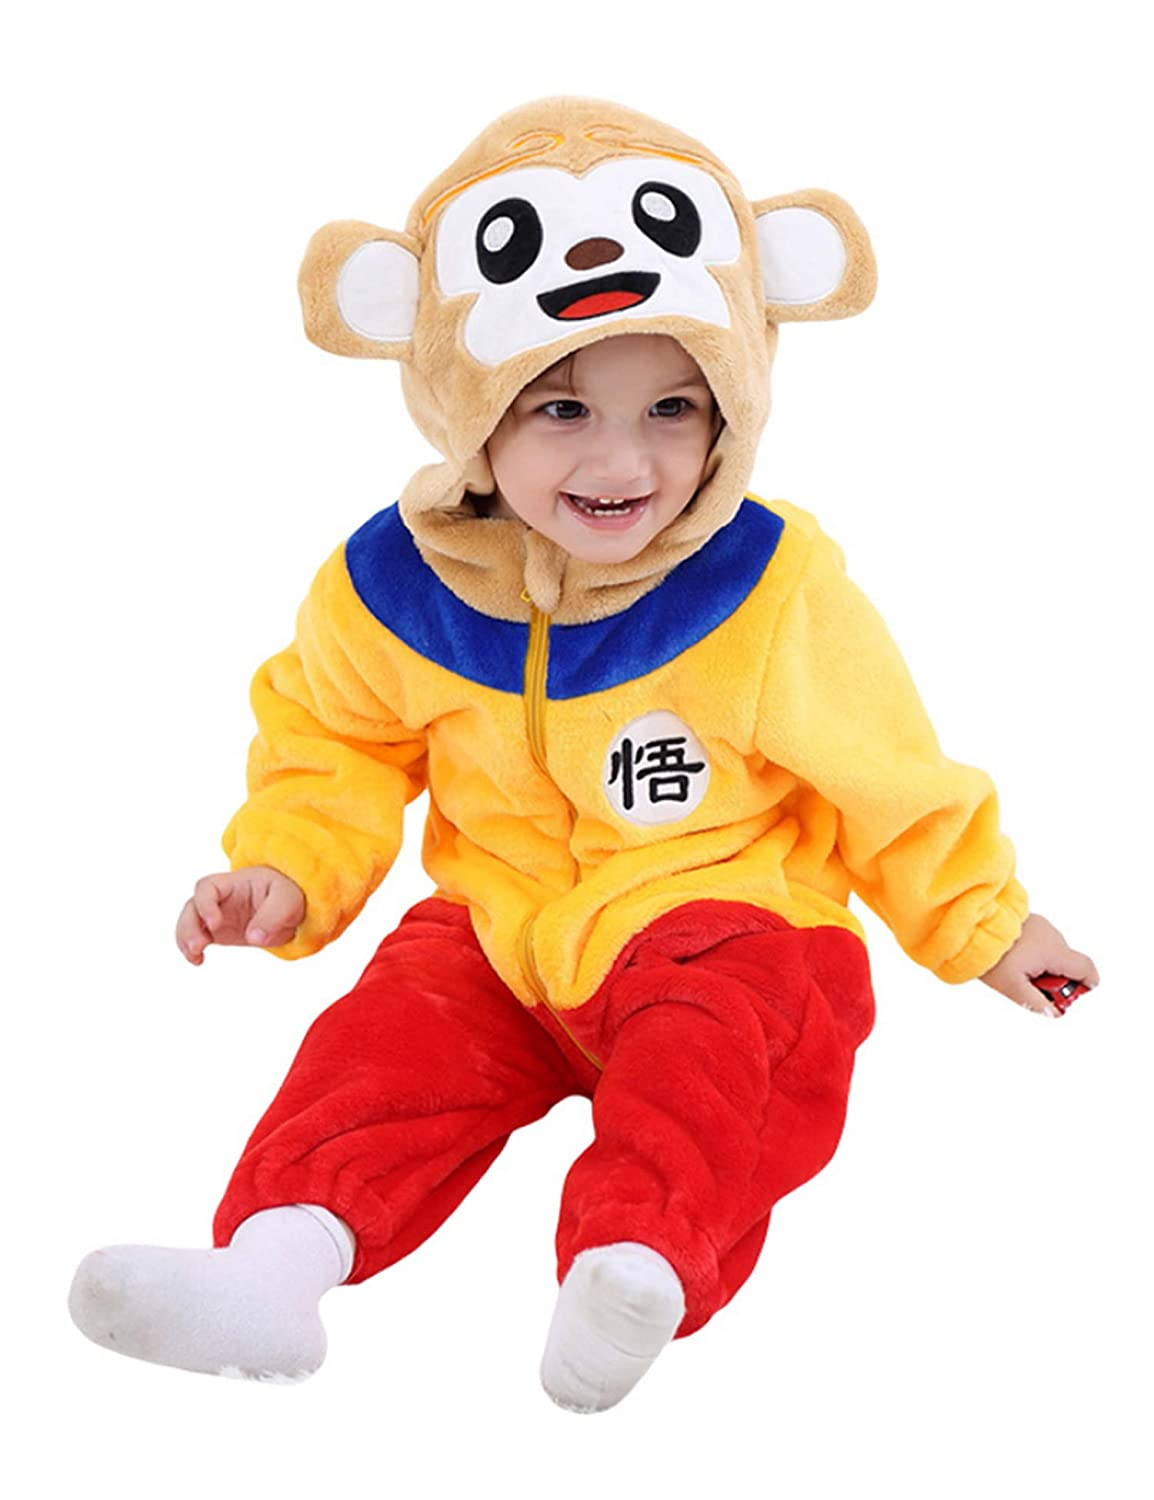 D.B.PRINCE Unisex Baby Flannel Hooded Animal Cosplay Pajamas Outfit Homewear